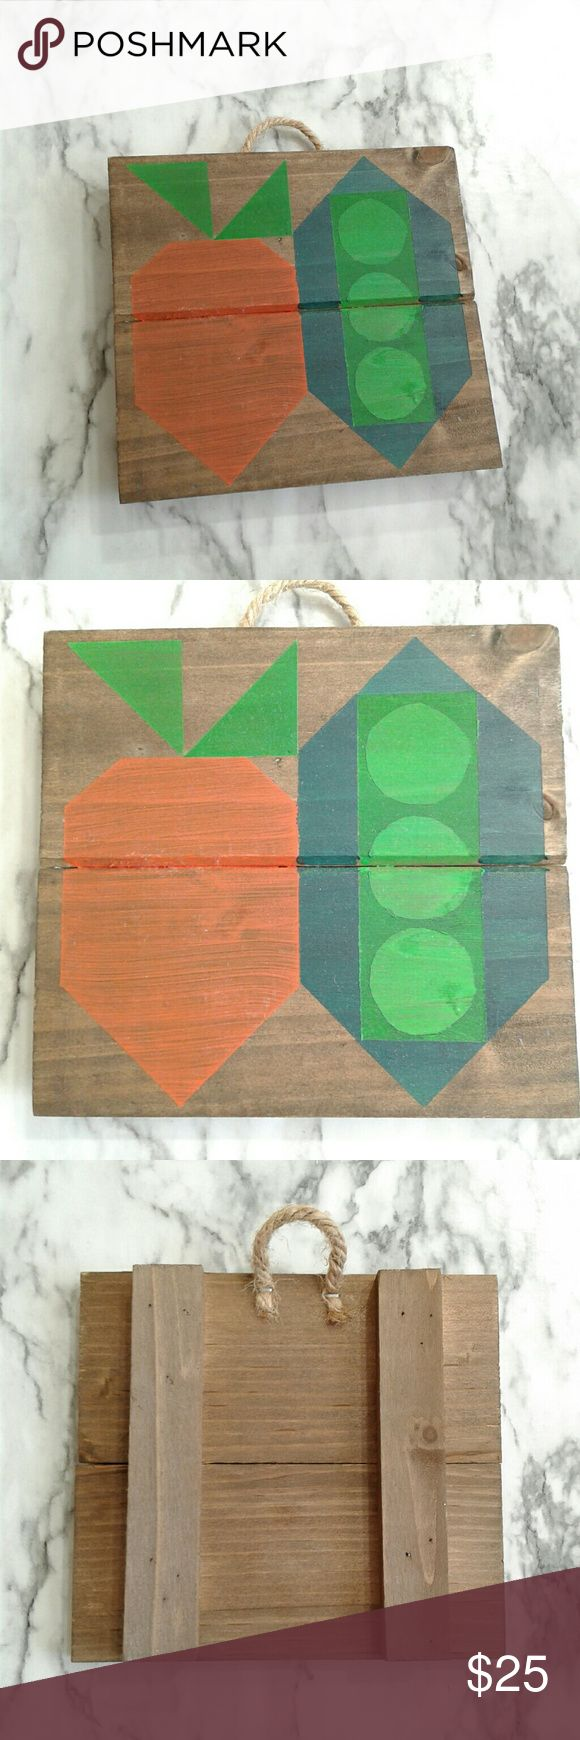 Hand-painted Rustic Kitchen Peas & Carrots Decor Whether you place this in the k...